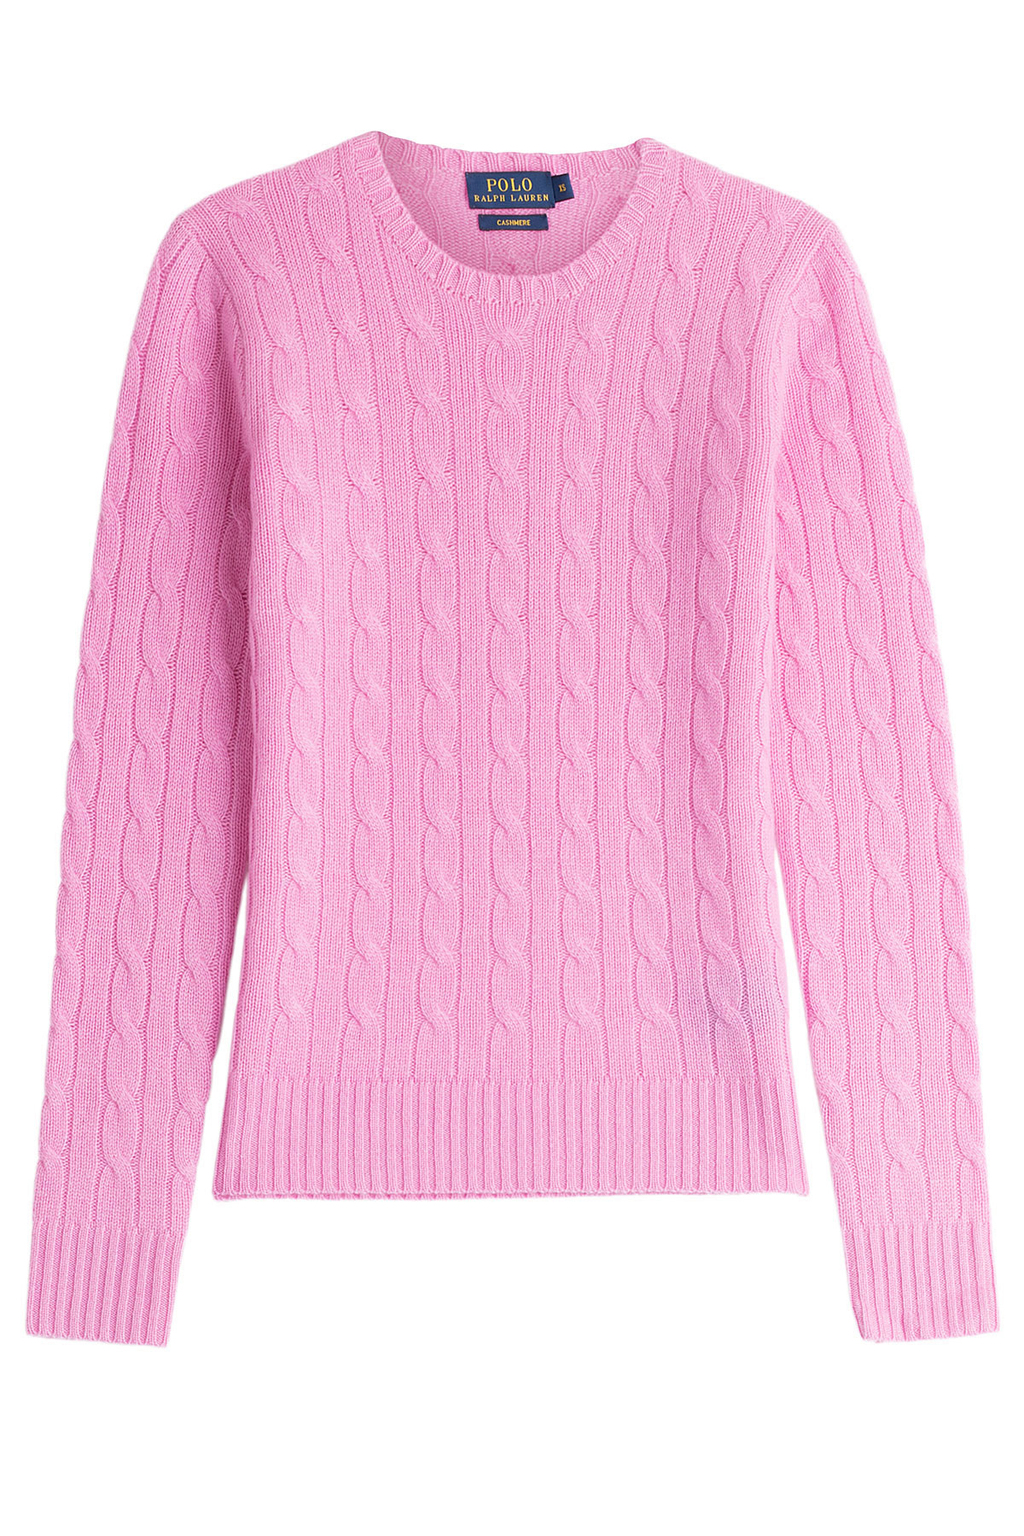 Cashmere Cable Knit Pullover - style: standard; pattern: cable knit; predominant colour: pink; occasions: casual; length: standard; fit: standard fit; neckline: crew; fibres: cashmere - 100%; sleeve length: long sleeve; sleeve style: standard; texture group: knits/crochet; pattern type: knitted - fine stitch; season: s/s 2016; wardrobe: highlight